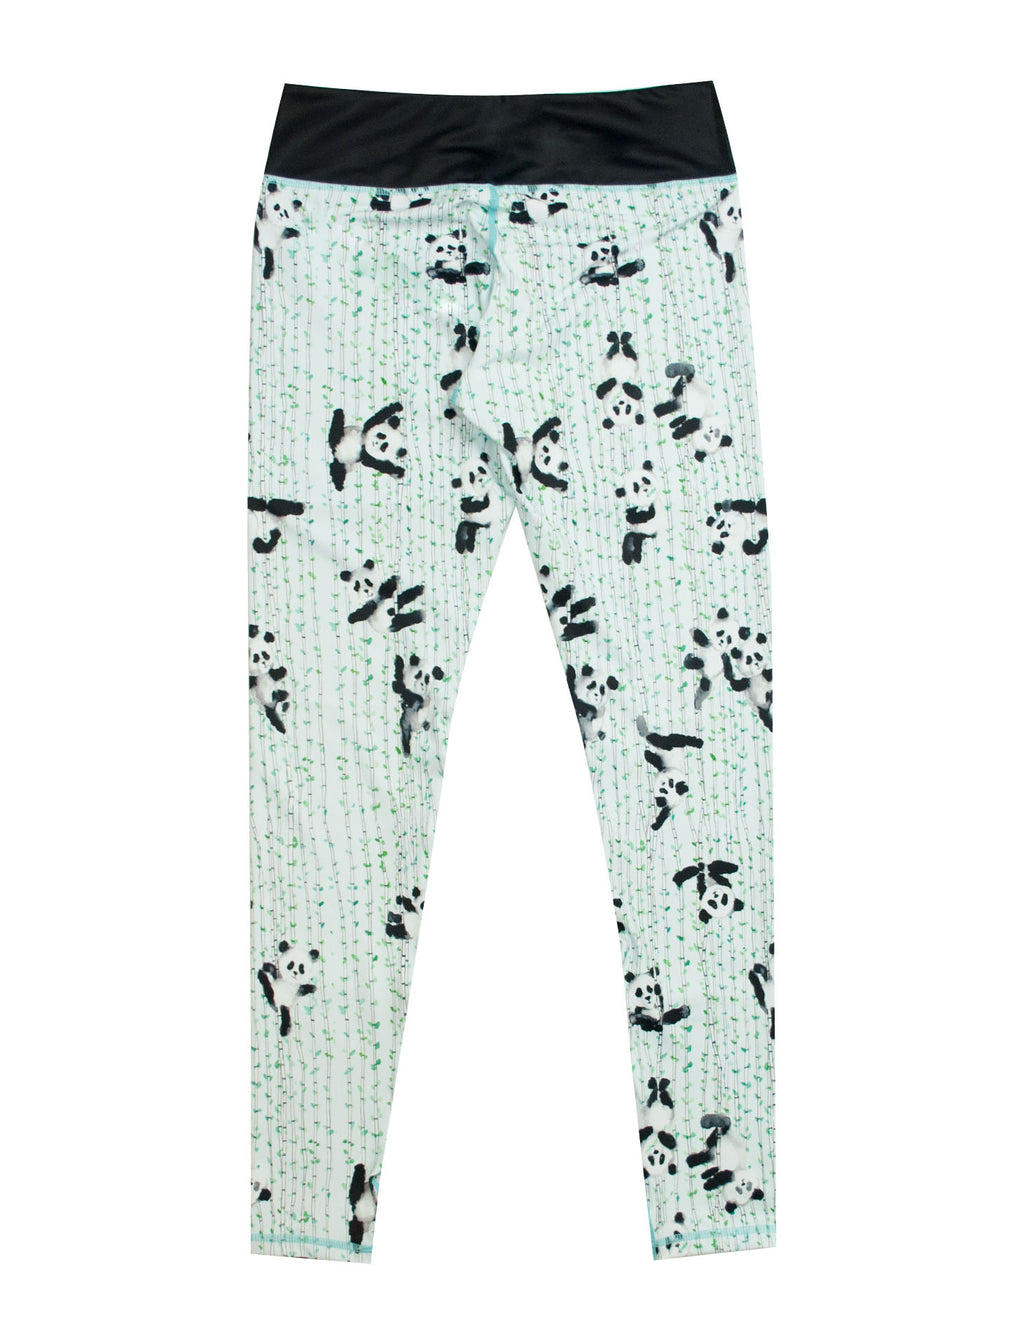 Poling Pandas Full Length Classic Printed Leggings